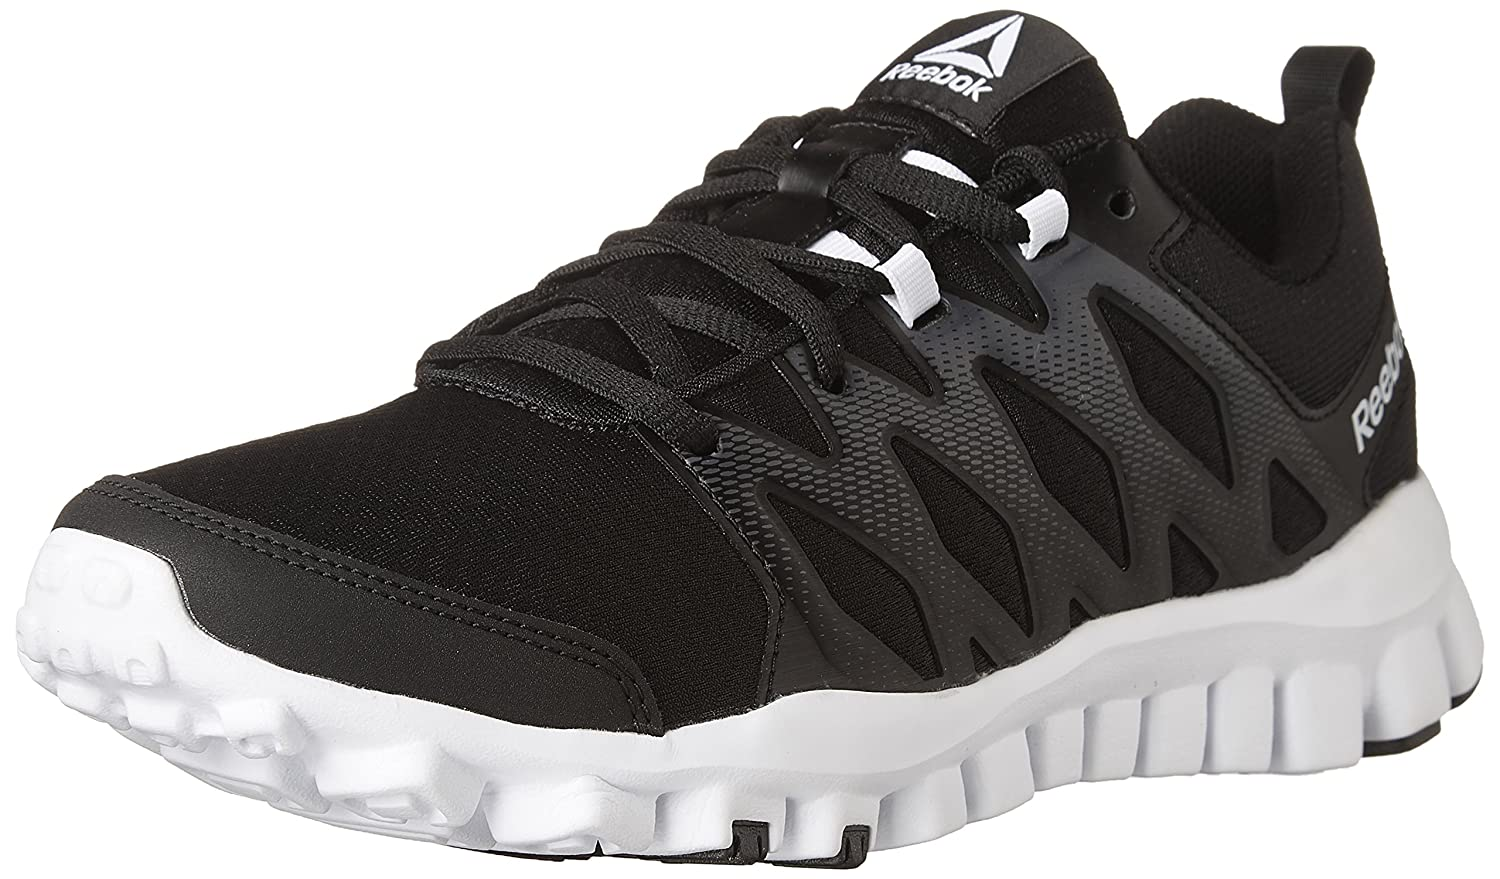 Reebok Women's Realflex Train 4.0 Cross-Trainer Shoe B071FX4S8X 5 M US|Black